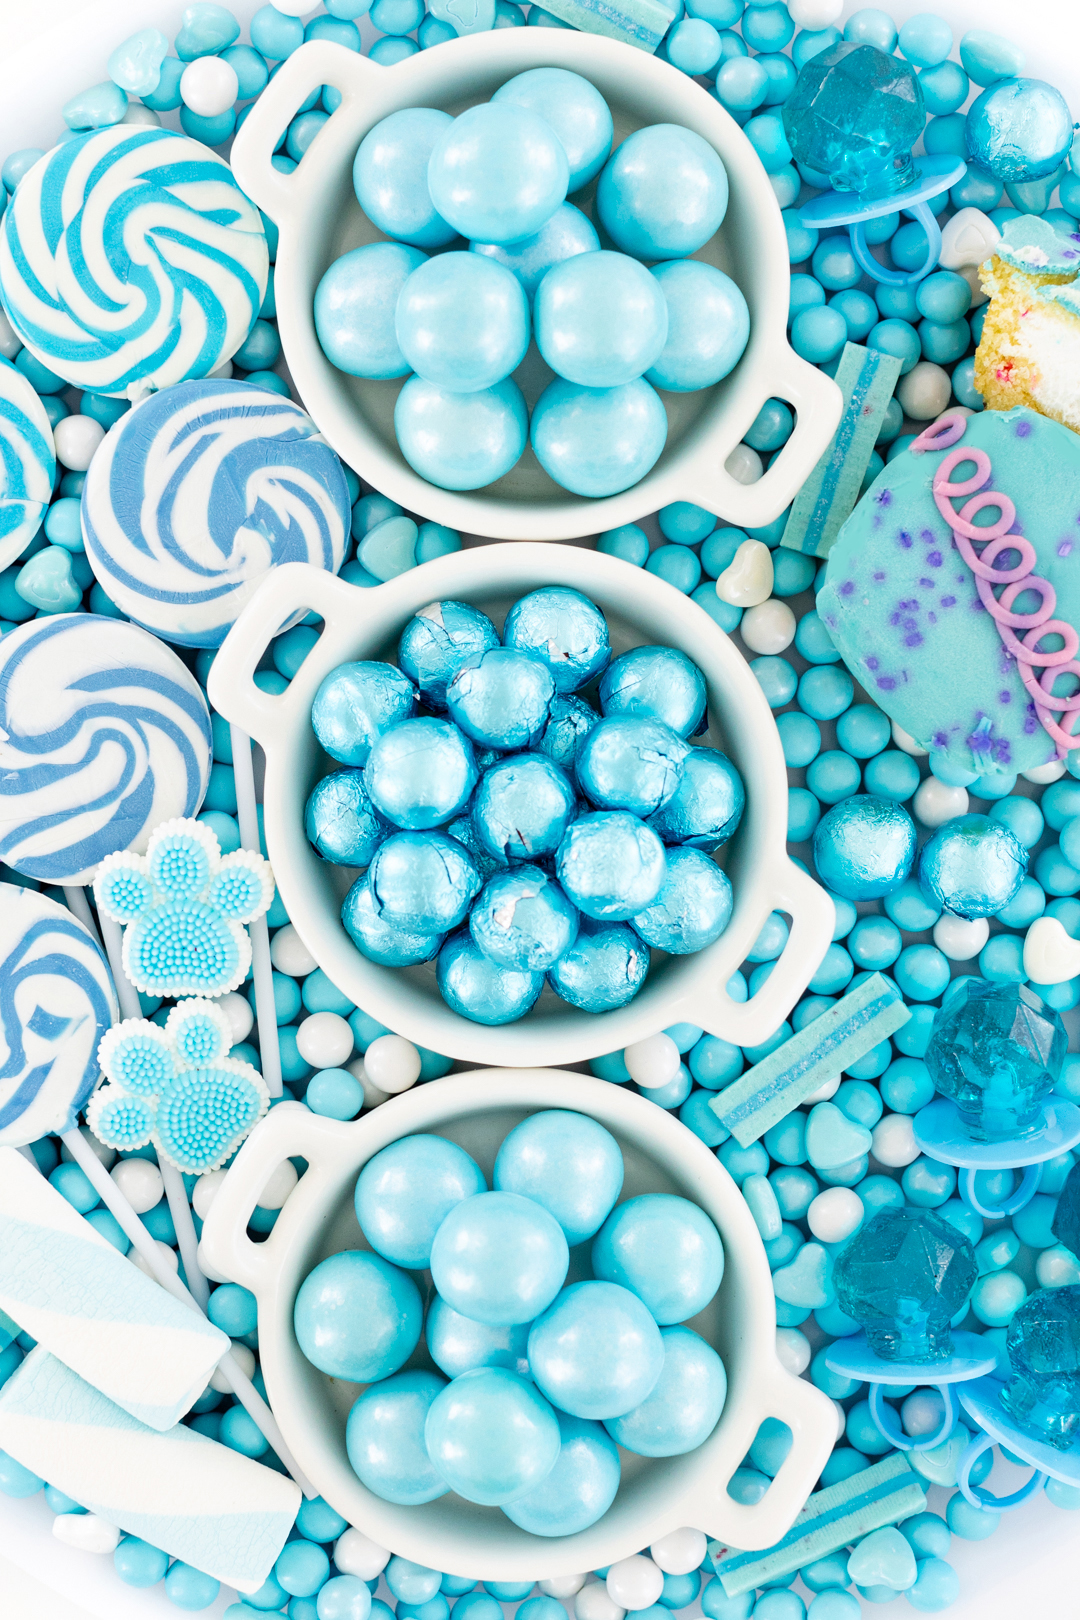 candies. Blue foil wrapped chocolates, gumballs, lollipops on a tray.